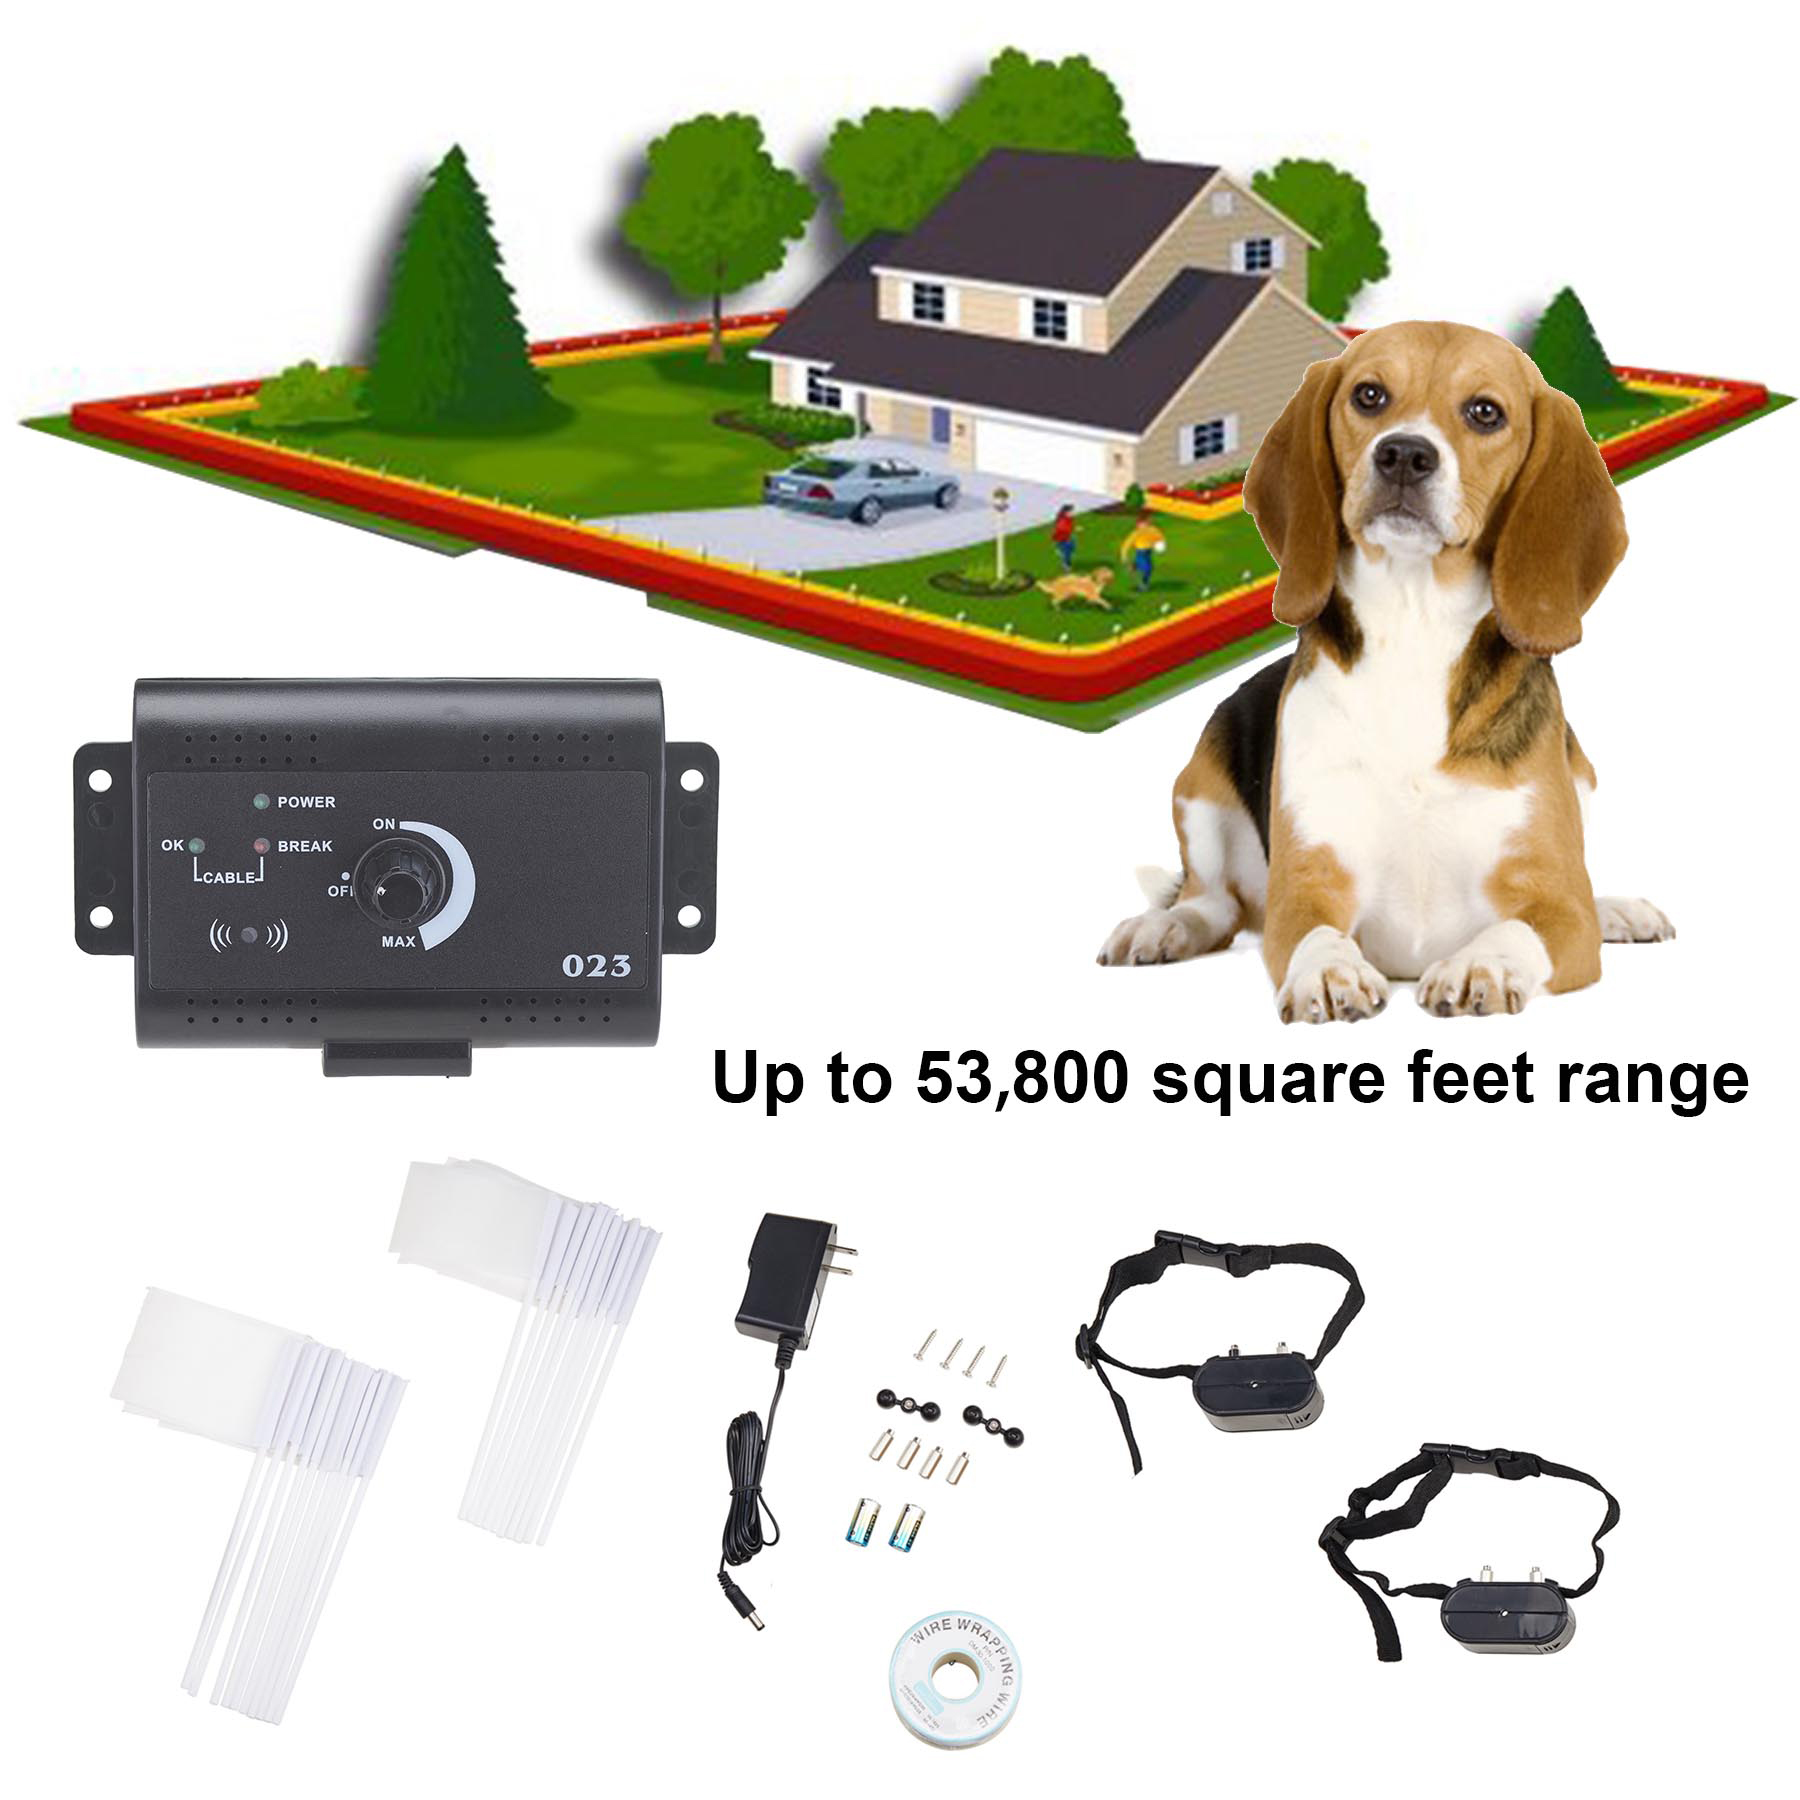 Banyan Underground Electric Dog Fence System Waterproof 2 Shock Collars for 2 Dogs